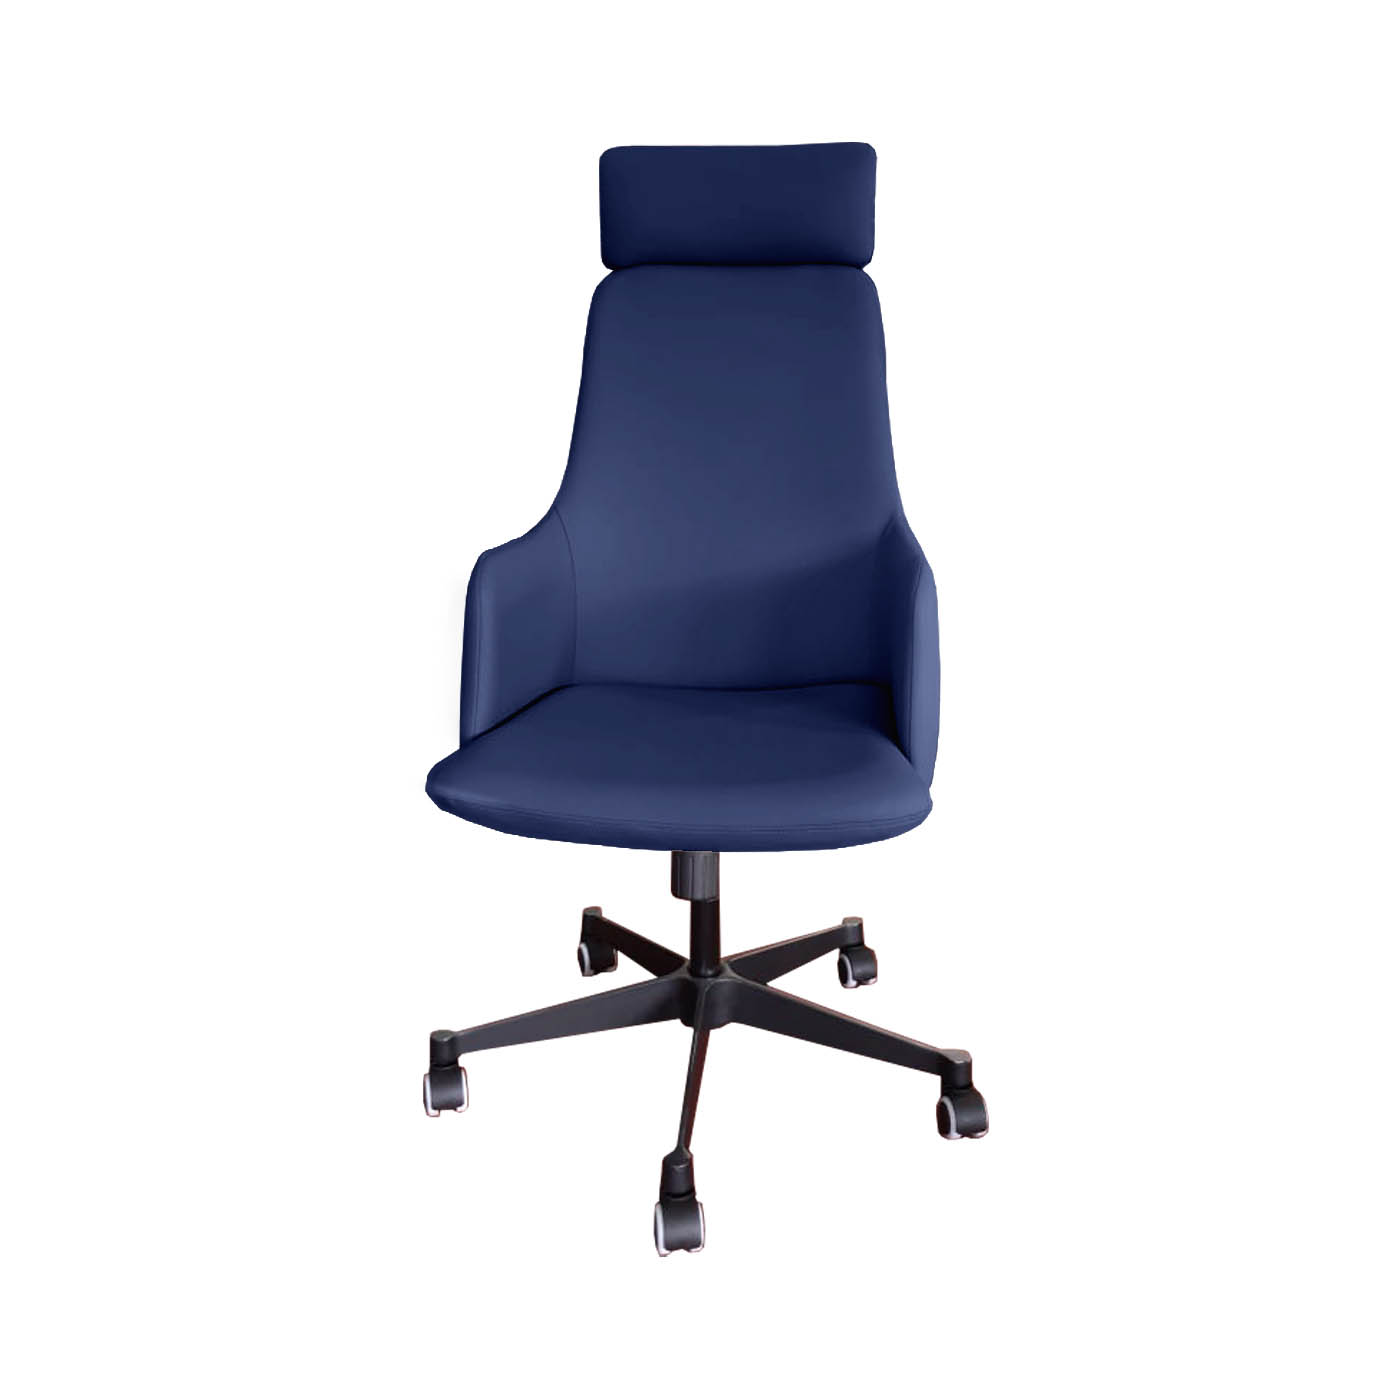 St. Pauli Blue Executive Chair